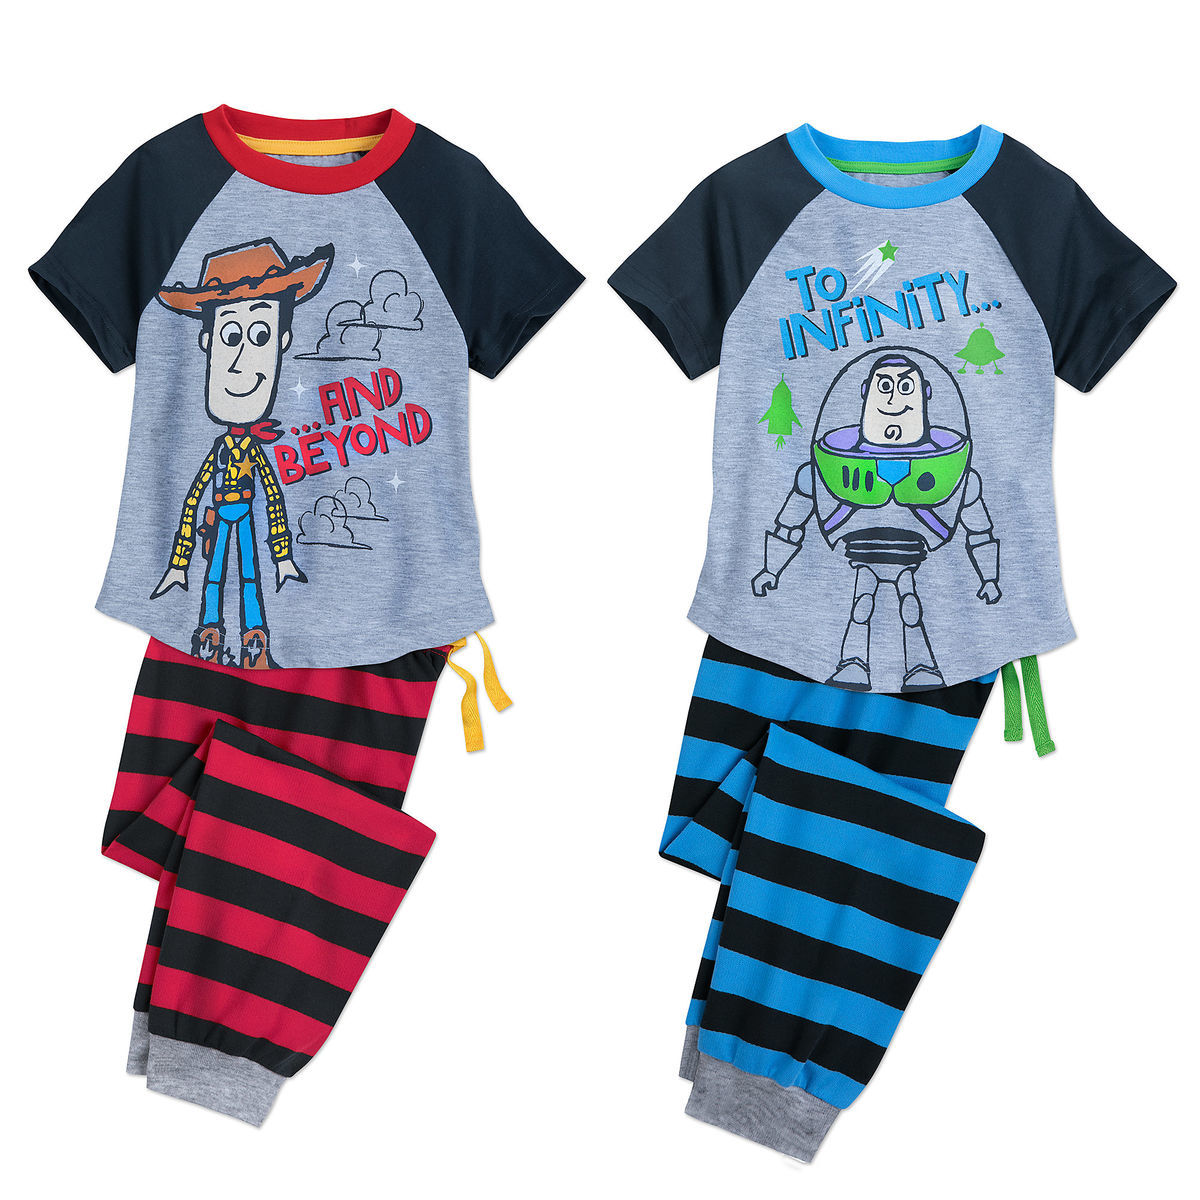 2d6d550f4d Product Image of Toy Story Best Friends PJ Sets for Kids - 2-Pack